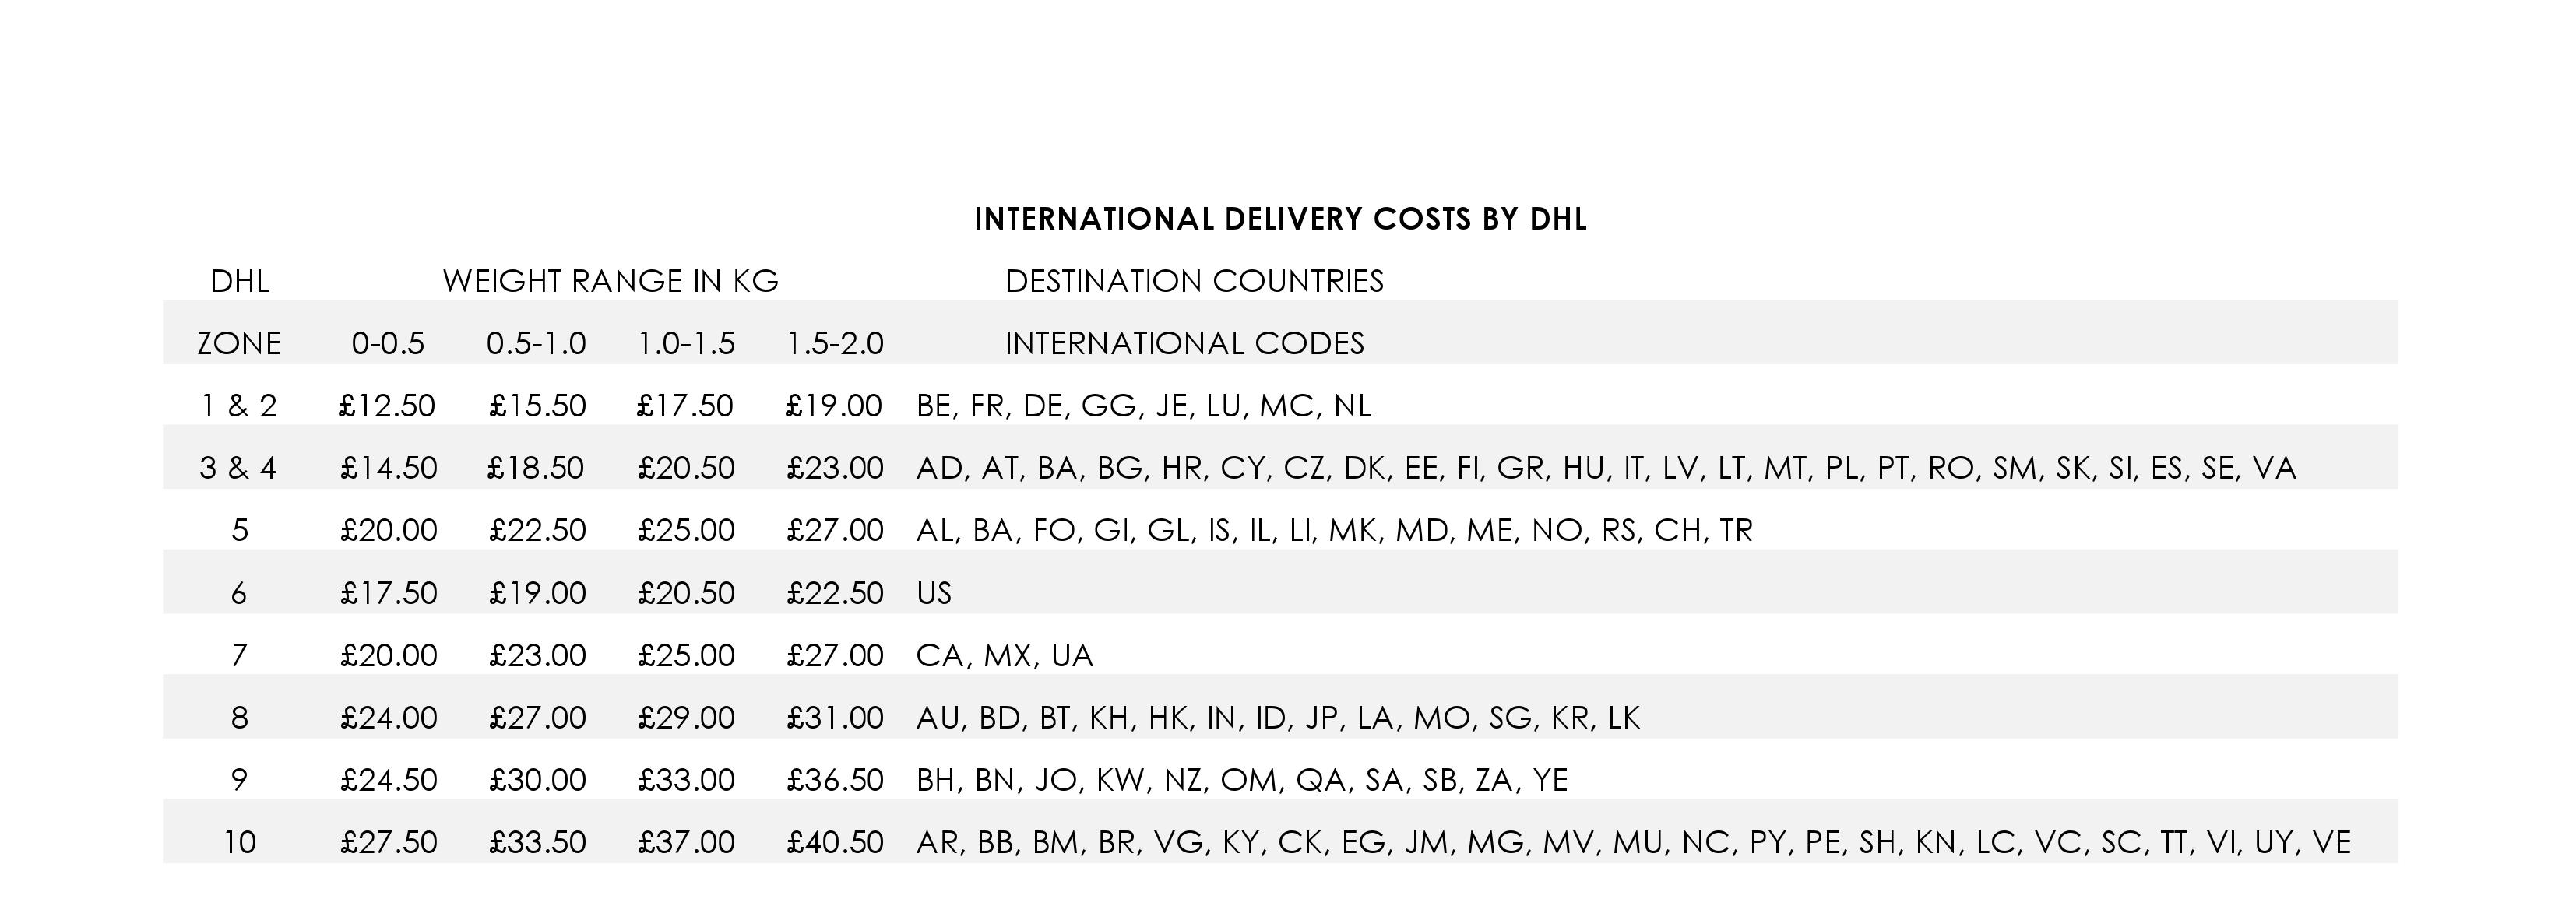 dhl express shipping costs for zoe alexander